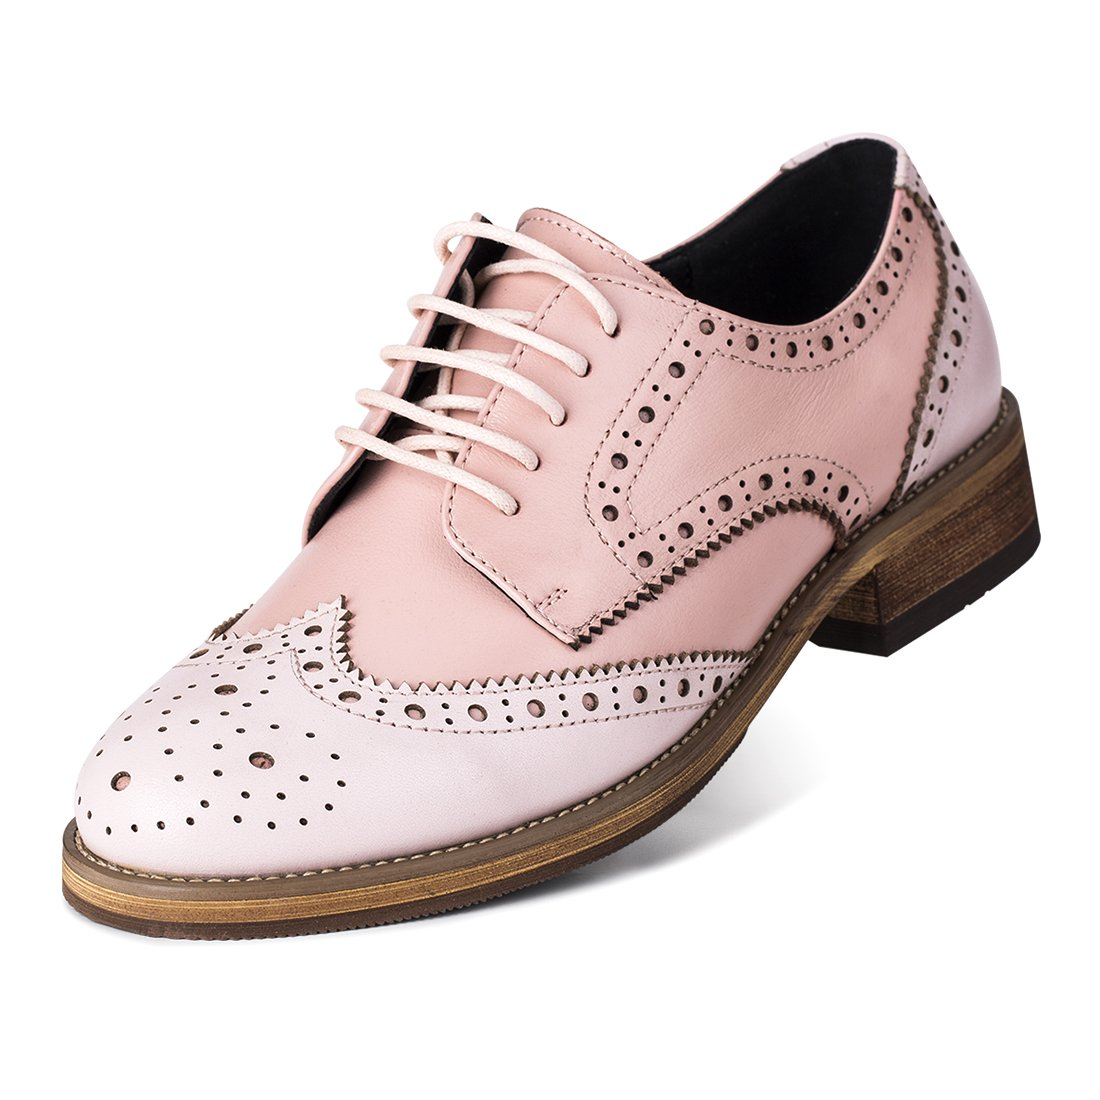 Jivana Women's Casual Leather Shoes Oxford Lace-up